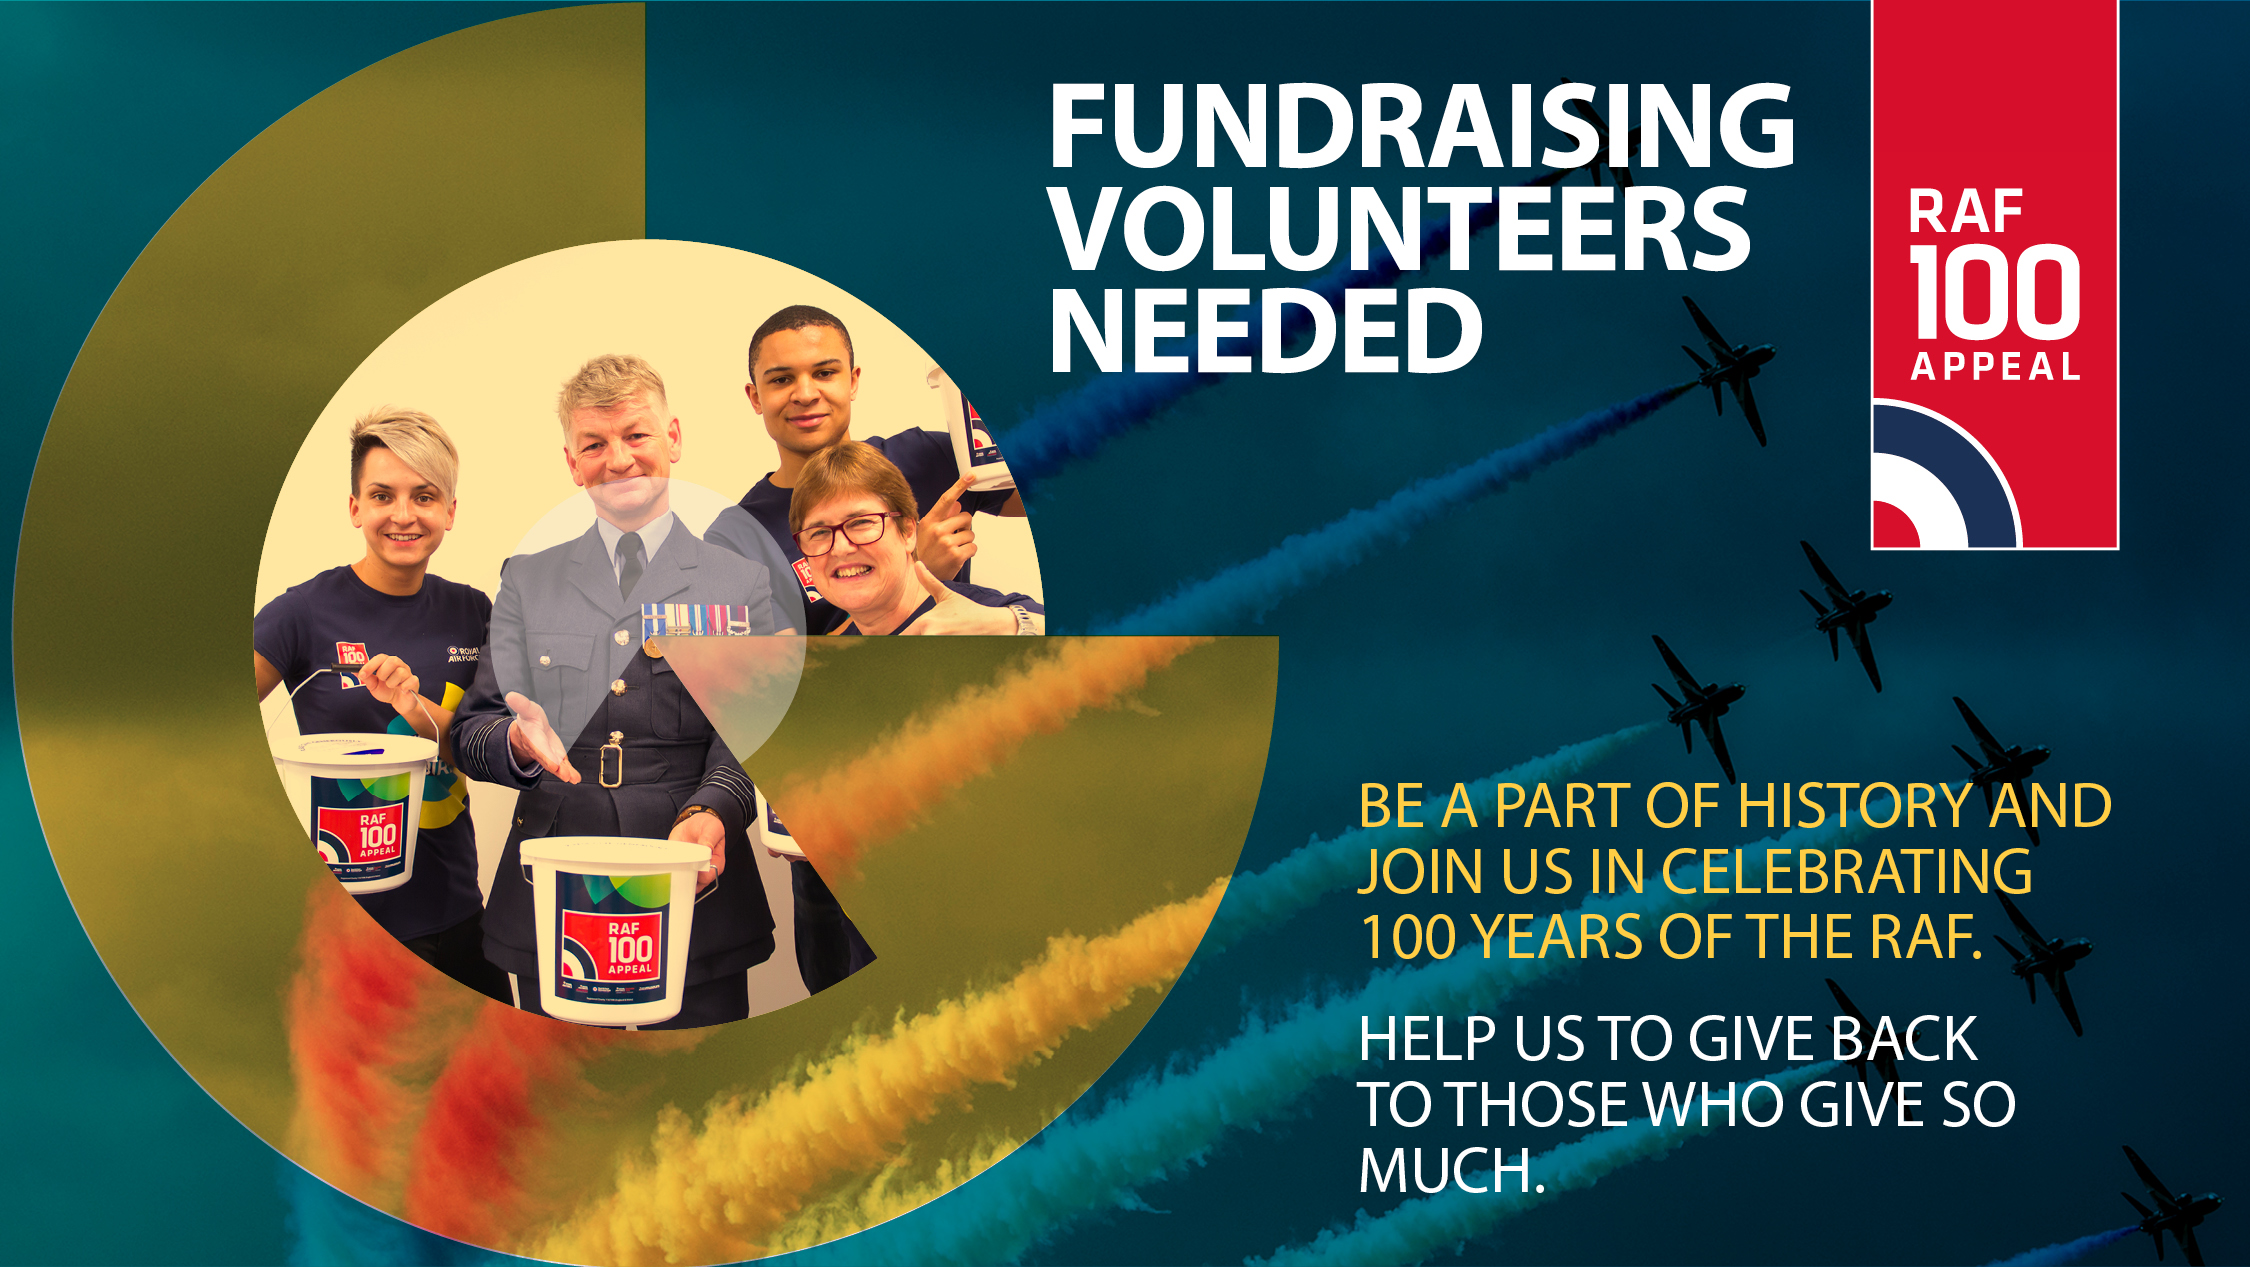 Volunteer for the RAF100 Appeal and be at the heart of the historic RAF100 events